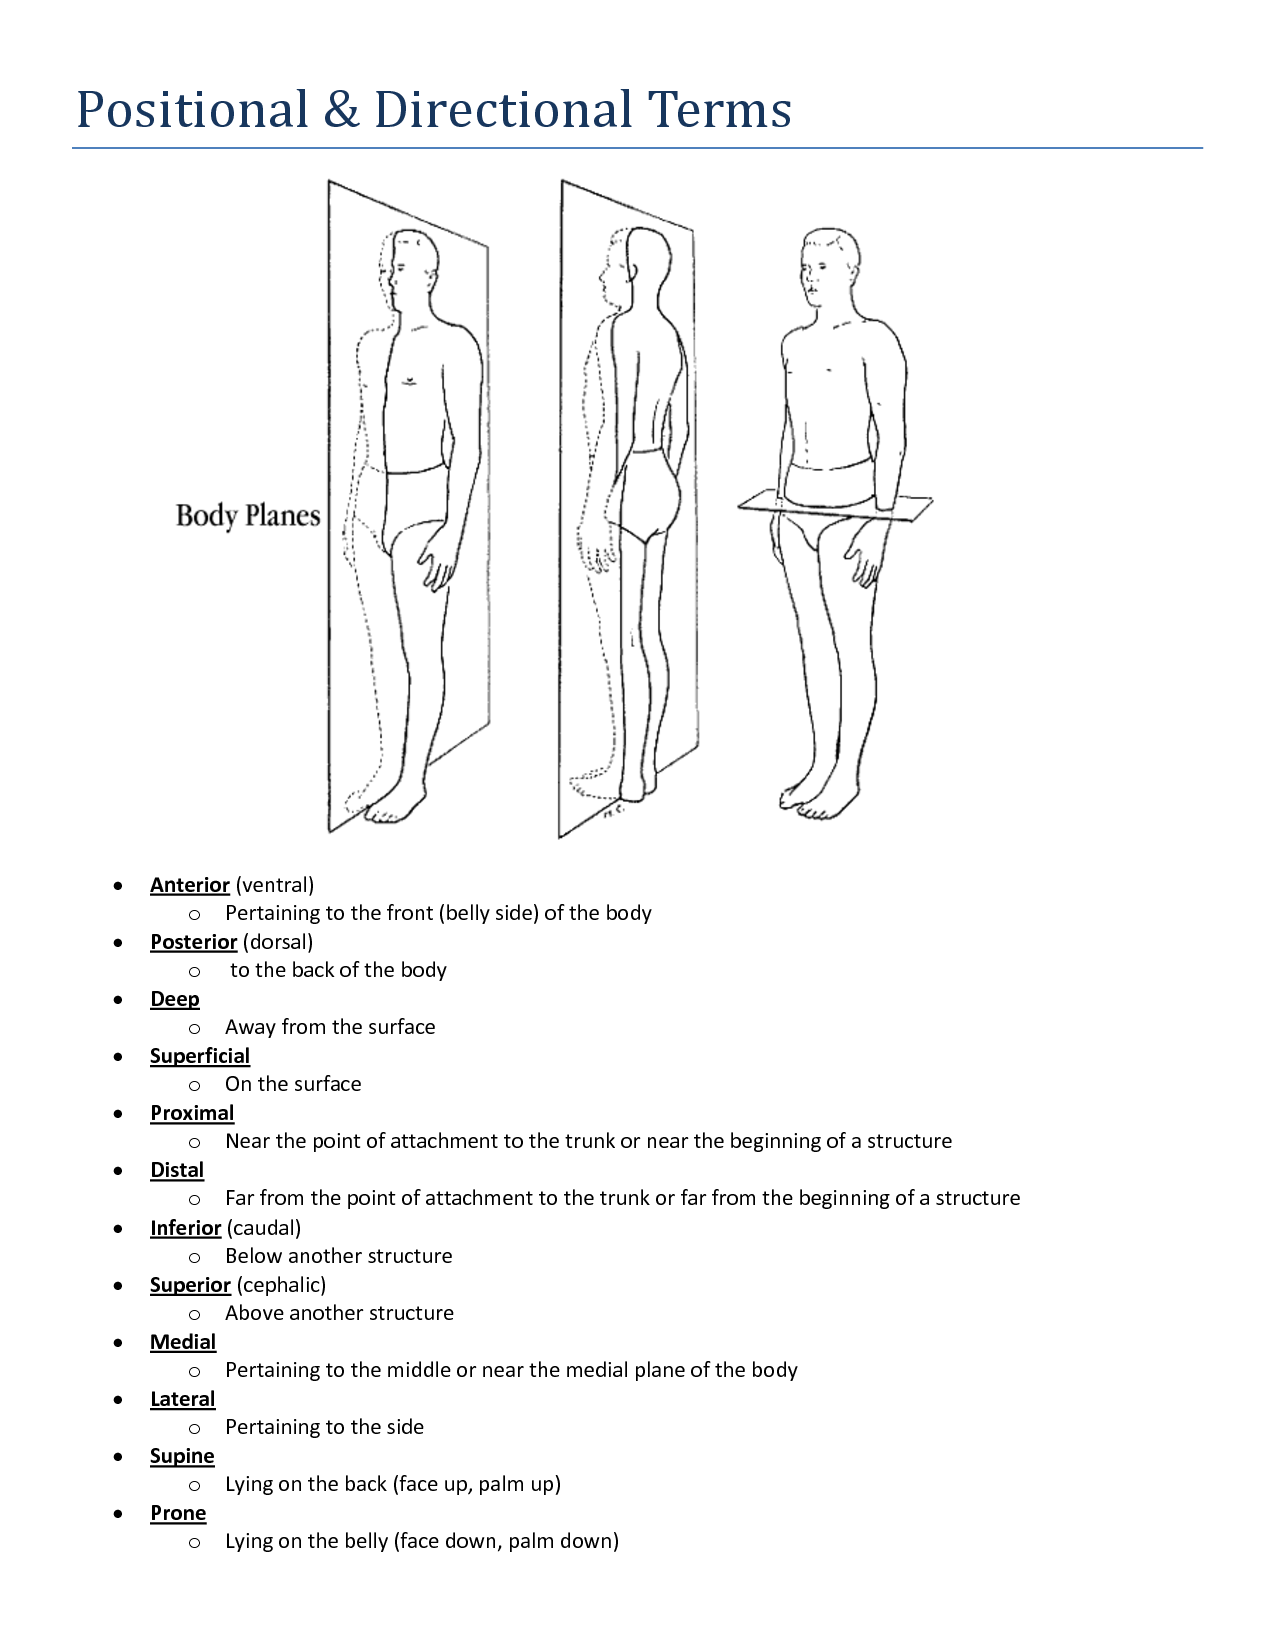 Anatomical Body Planes Worksheet